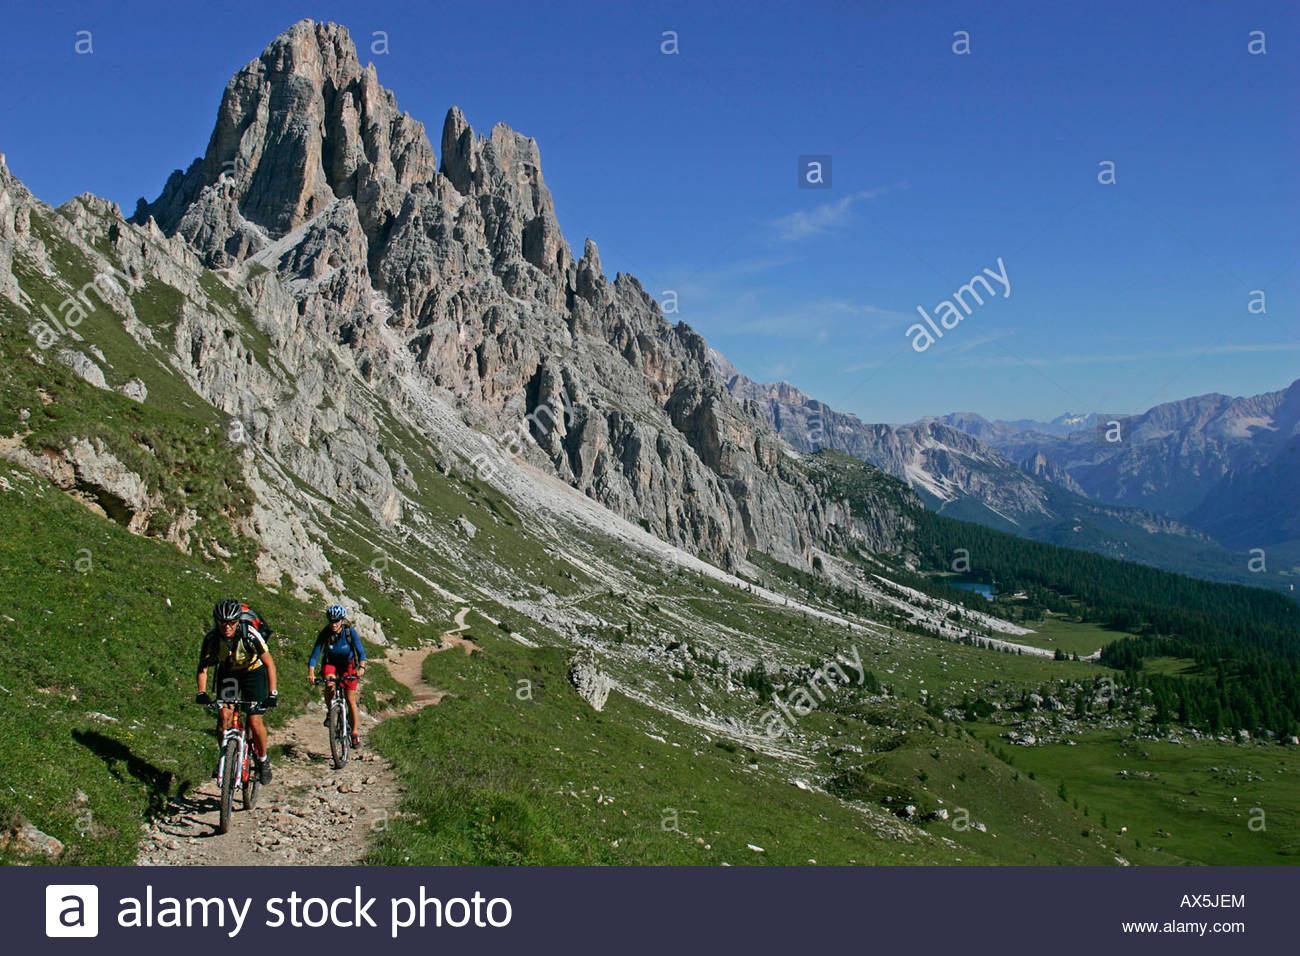 Female Mountain Bikers, Cima D'ambrizzola, Lago Di Fedara.